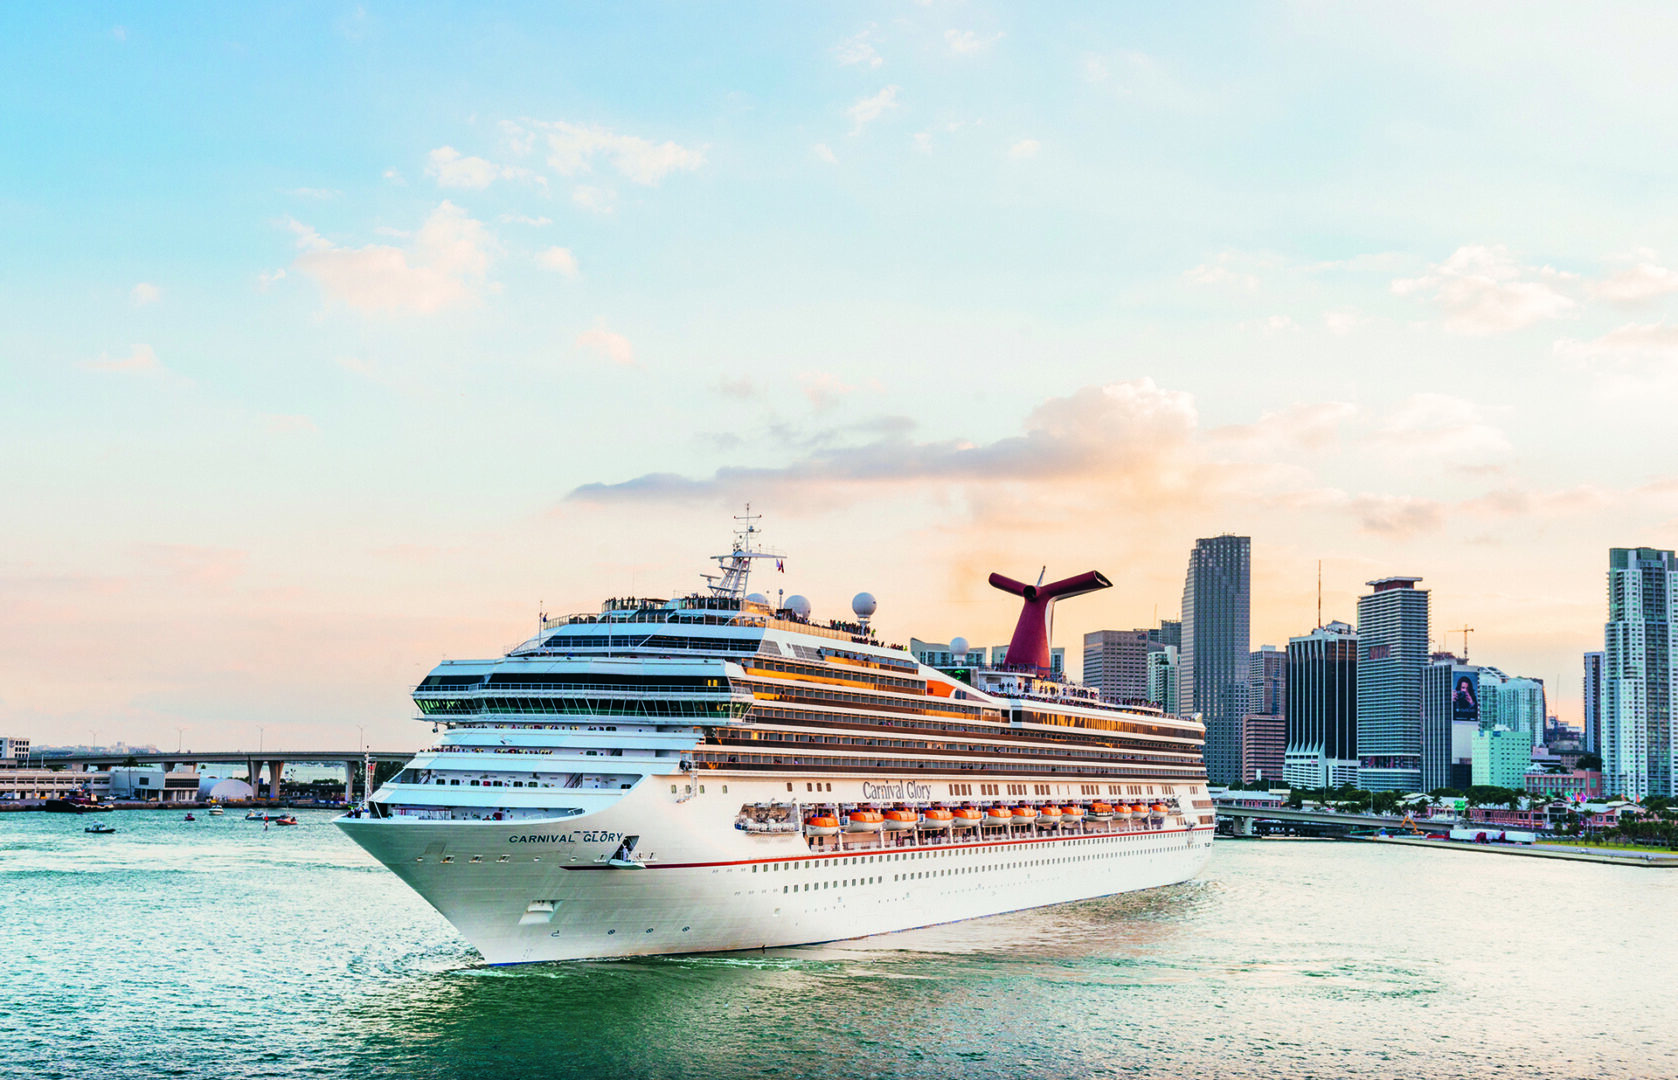 Miami, United States - November 19, 2016: A large passenger cruise ship, the Carnival Glory, turns around in Biscayne Bay as it prepares to exit the downtown Port of Miami via Government Cut.